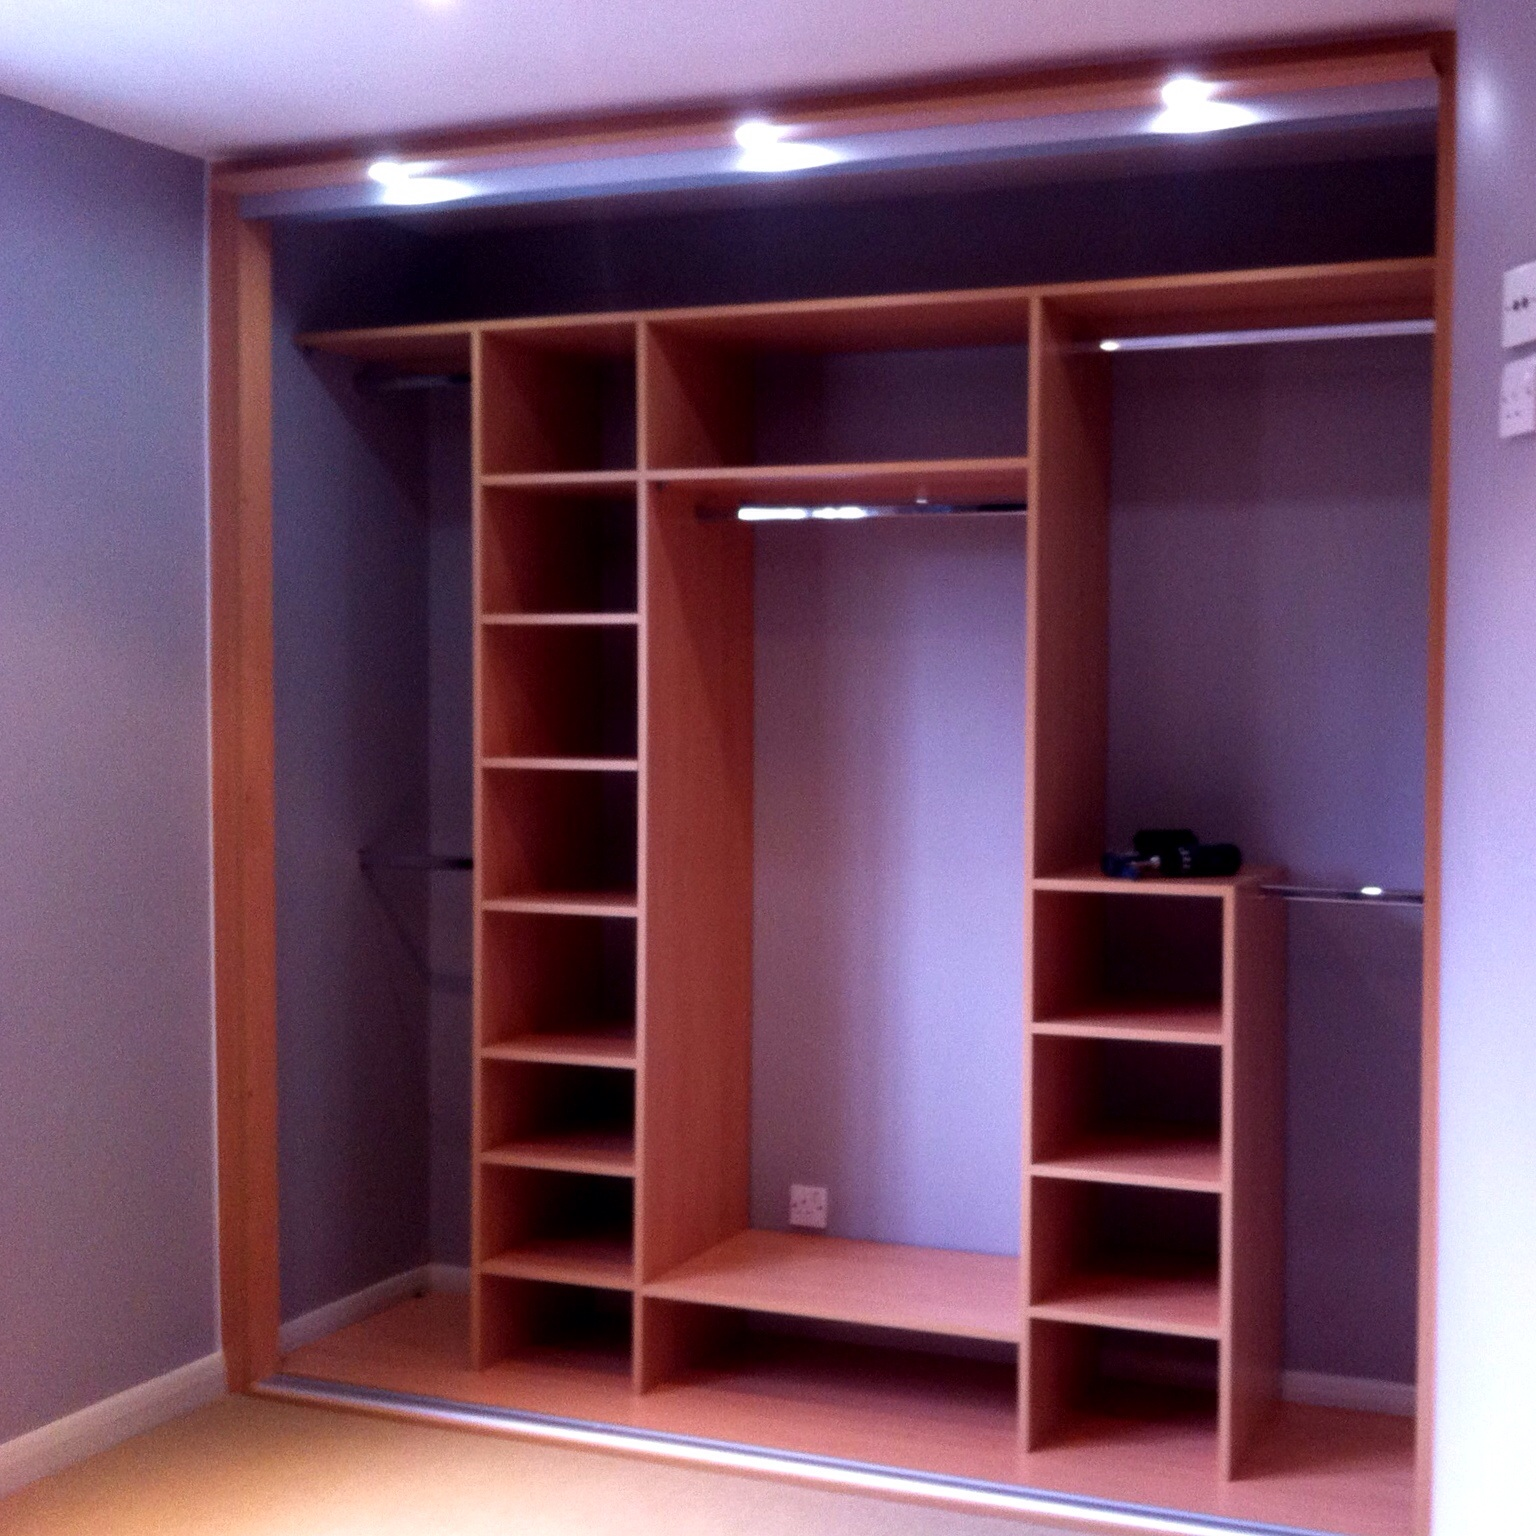 The tidiest our new wardrobes are ever likely to be!